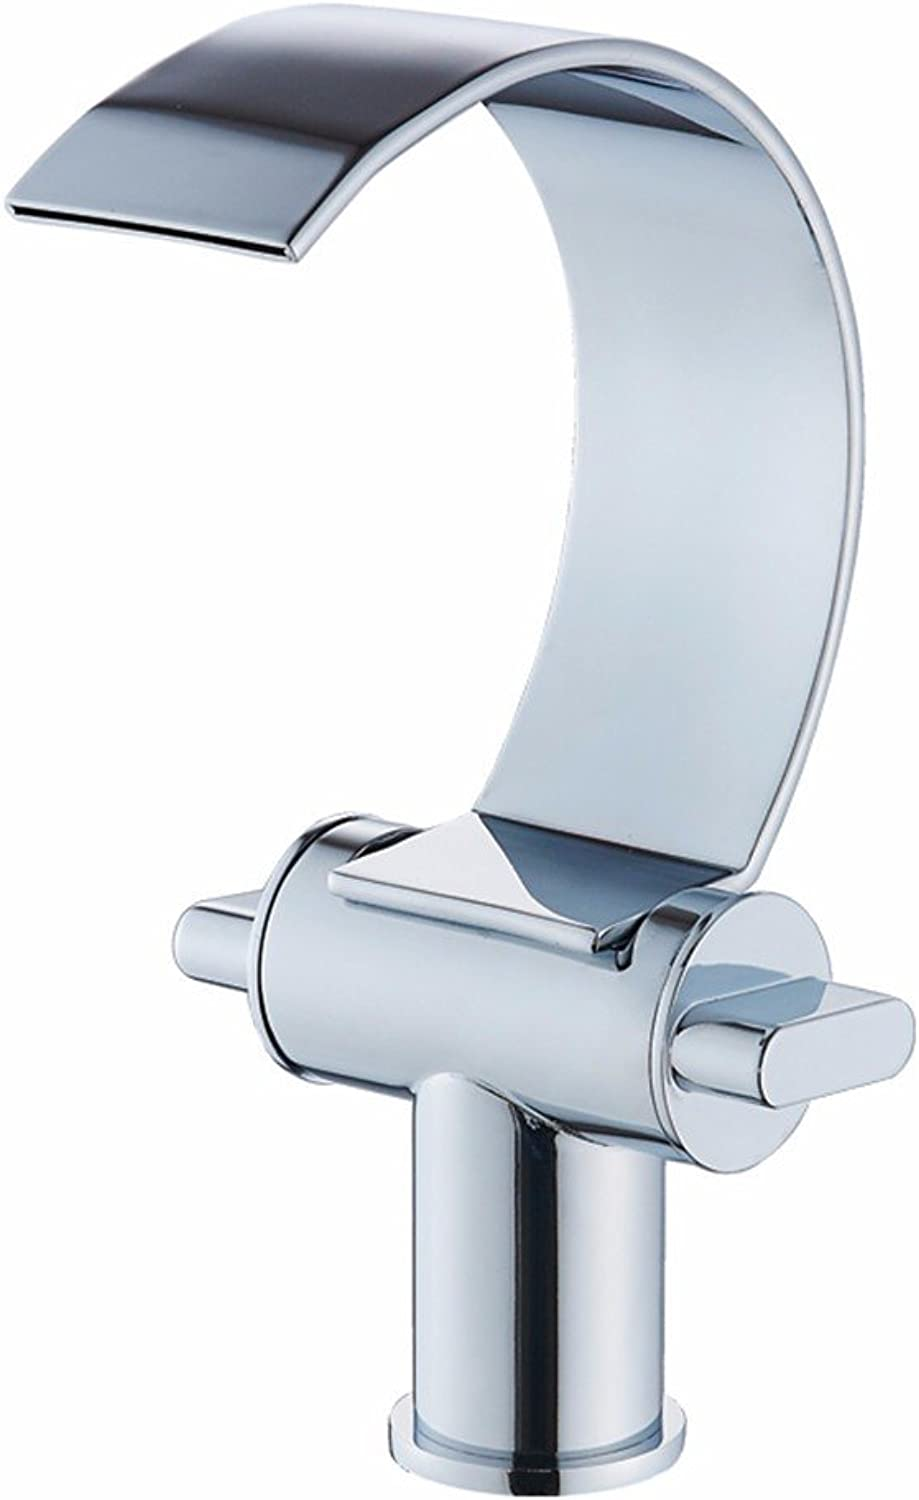 Hlluya Professional Sink Mixer Tap Kitchen Faucet The copper hot and cold basin faucet bathroom washing his face on the high table Taps